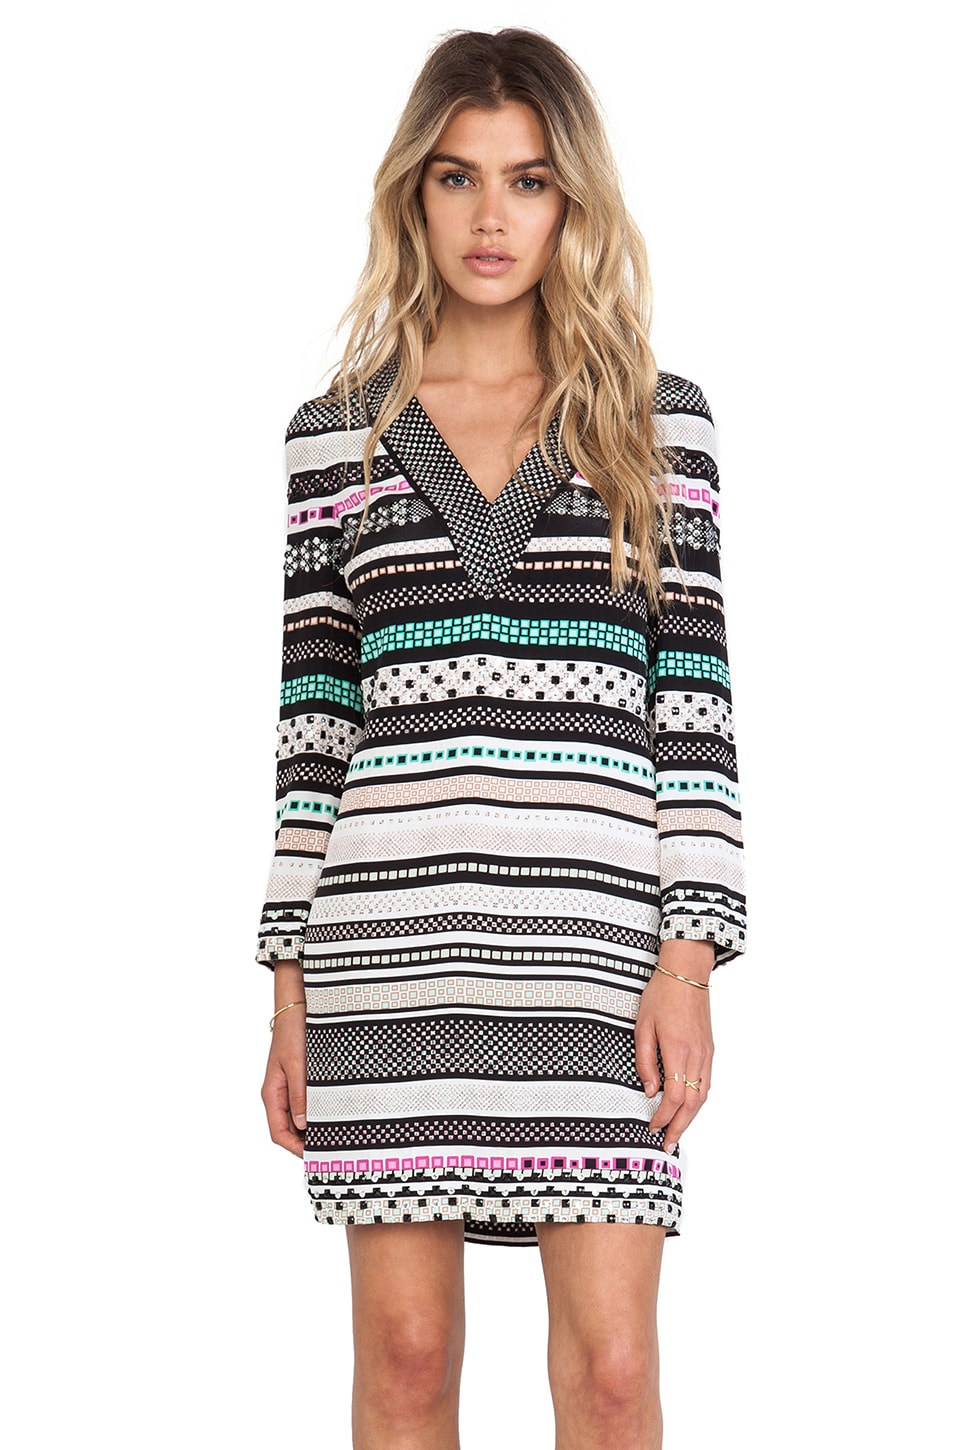 Diane von Furstenberg Ruby Striped Dress in Banded Dots